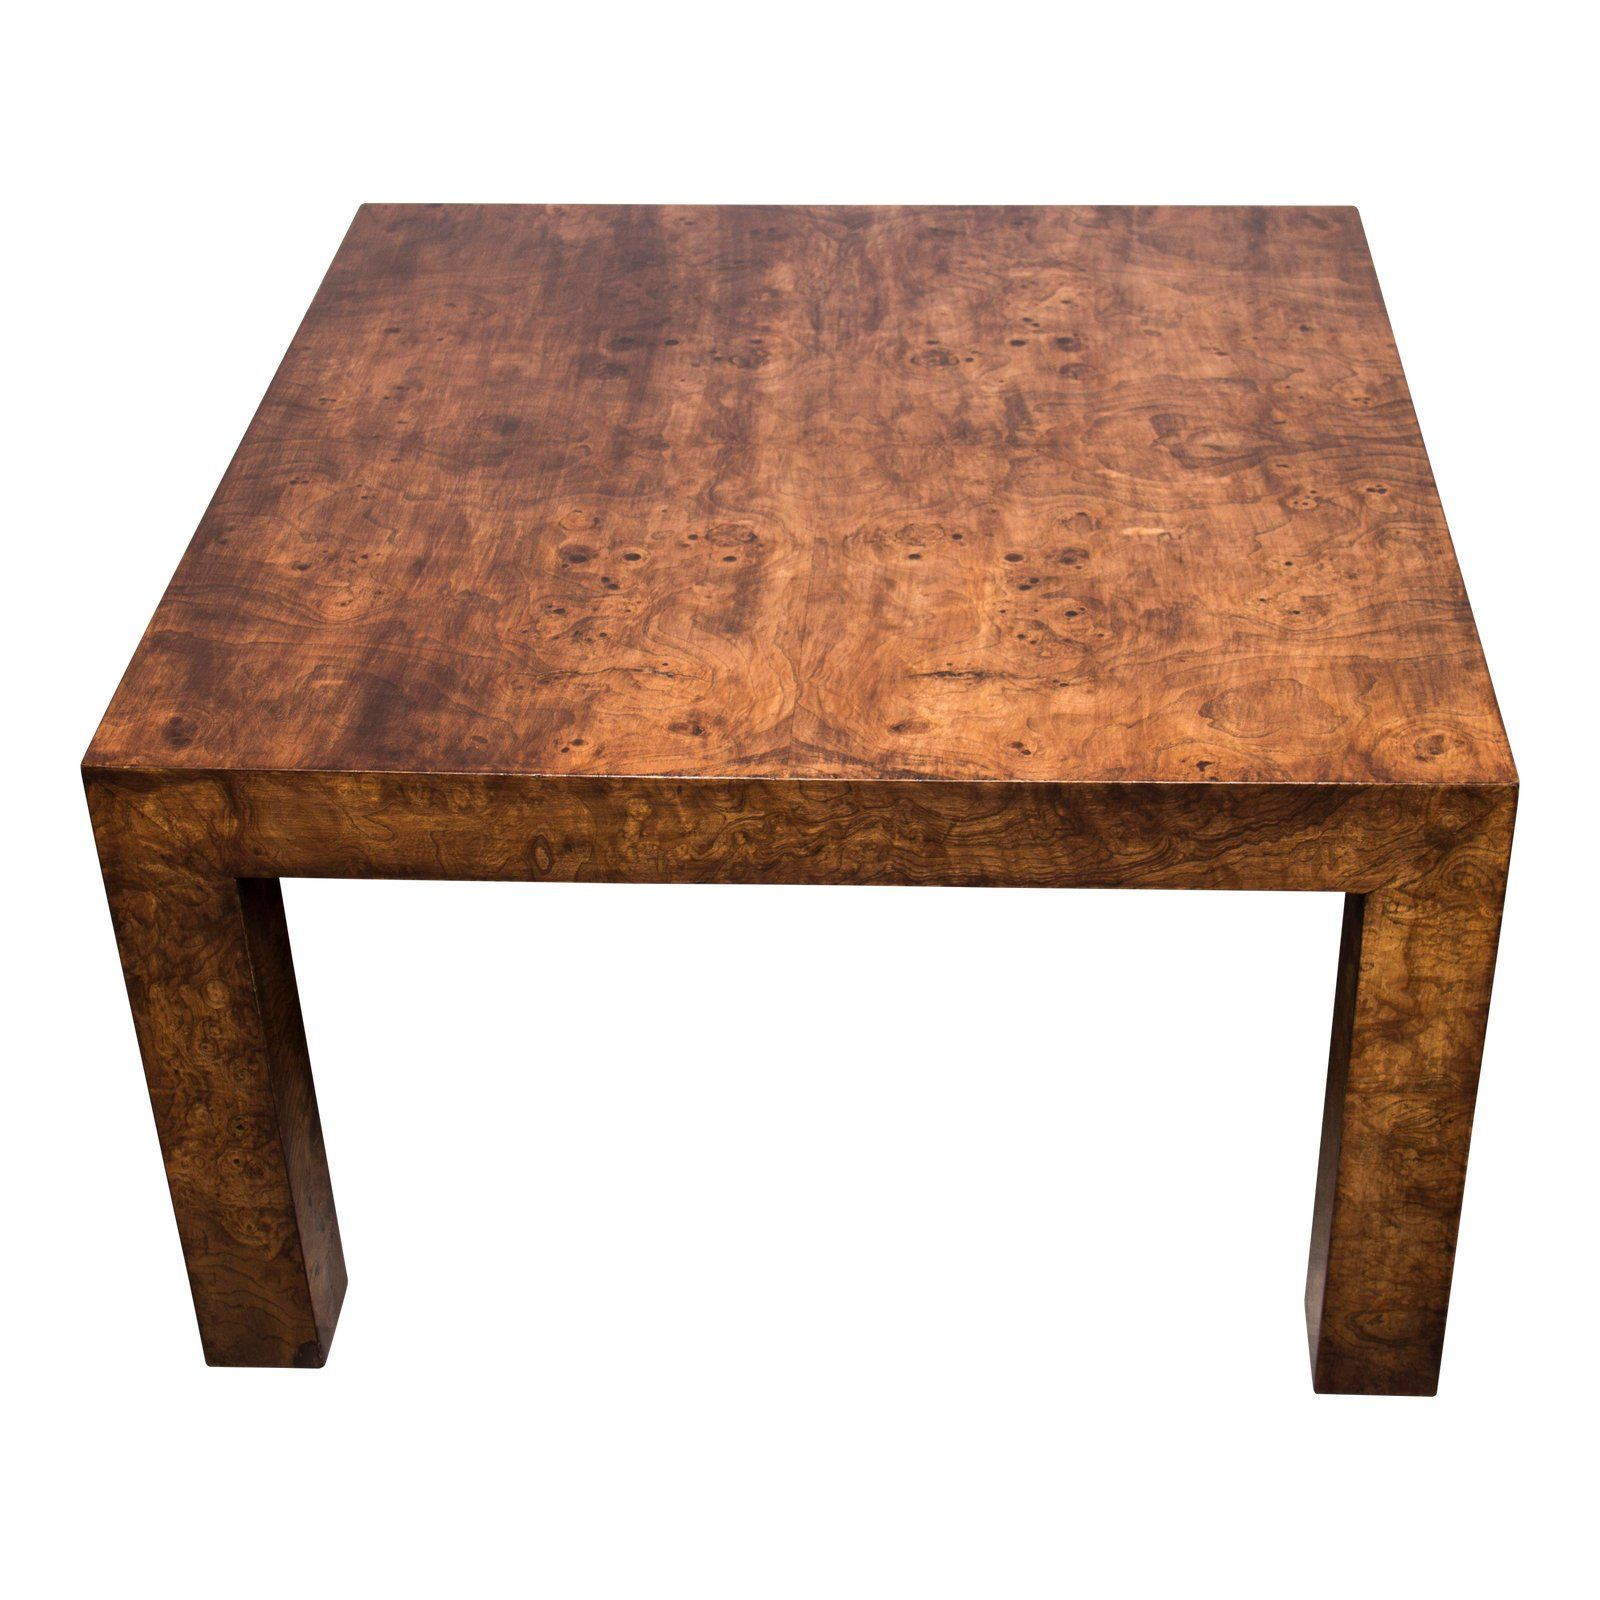 - 1970s Hollywood Regency Burl Wood Coffee Table Coffee Tables For